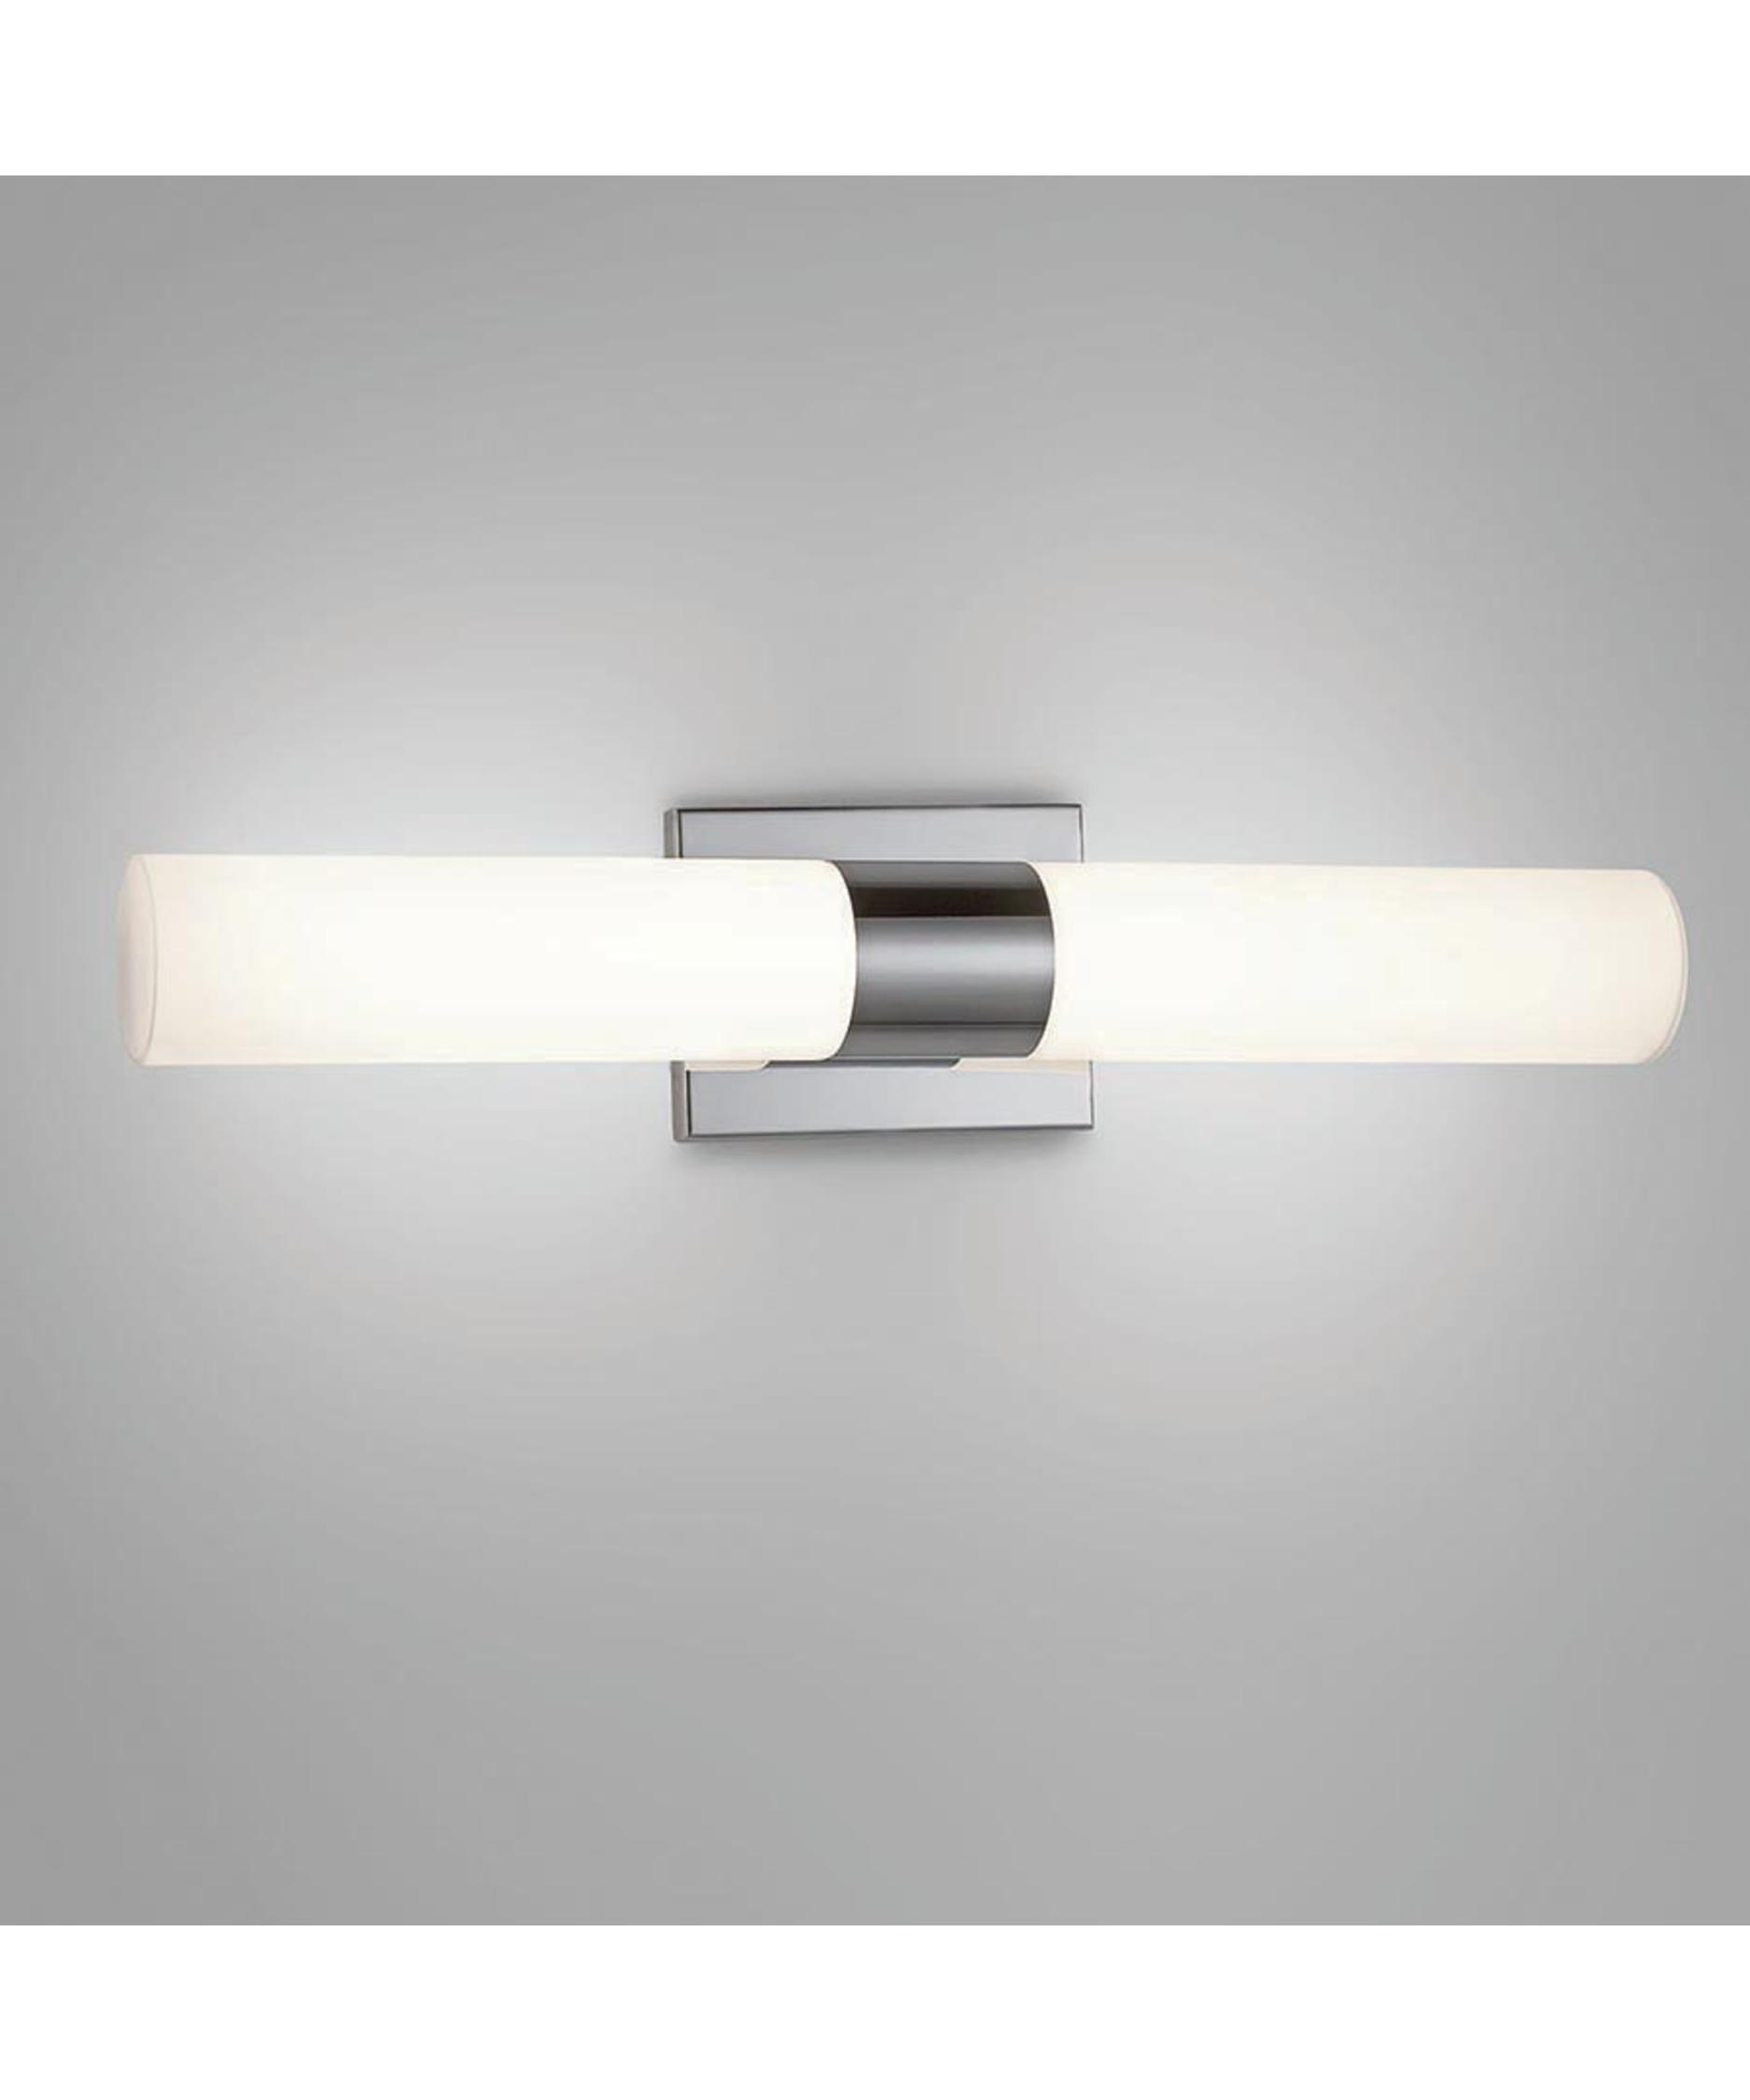 wac lighting ws elemental  inch wide bath vanity light  - shown in chrome finish with mouth blown etched triplex glass